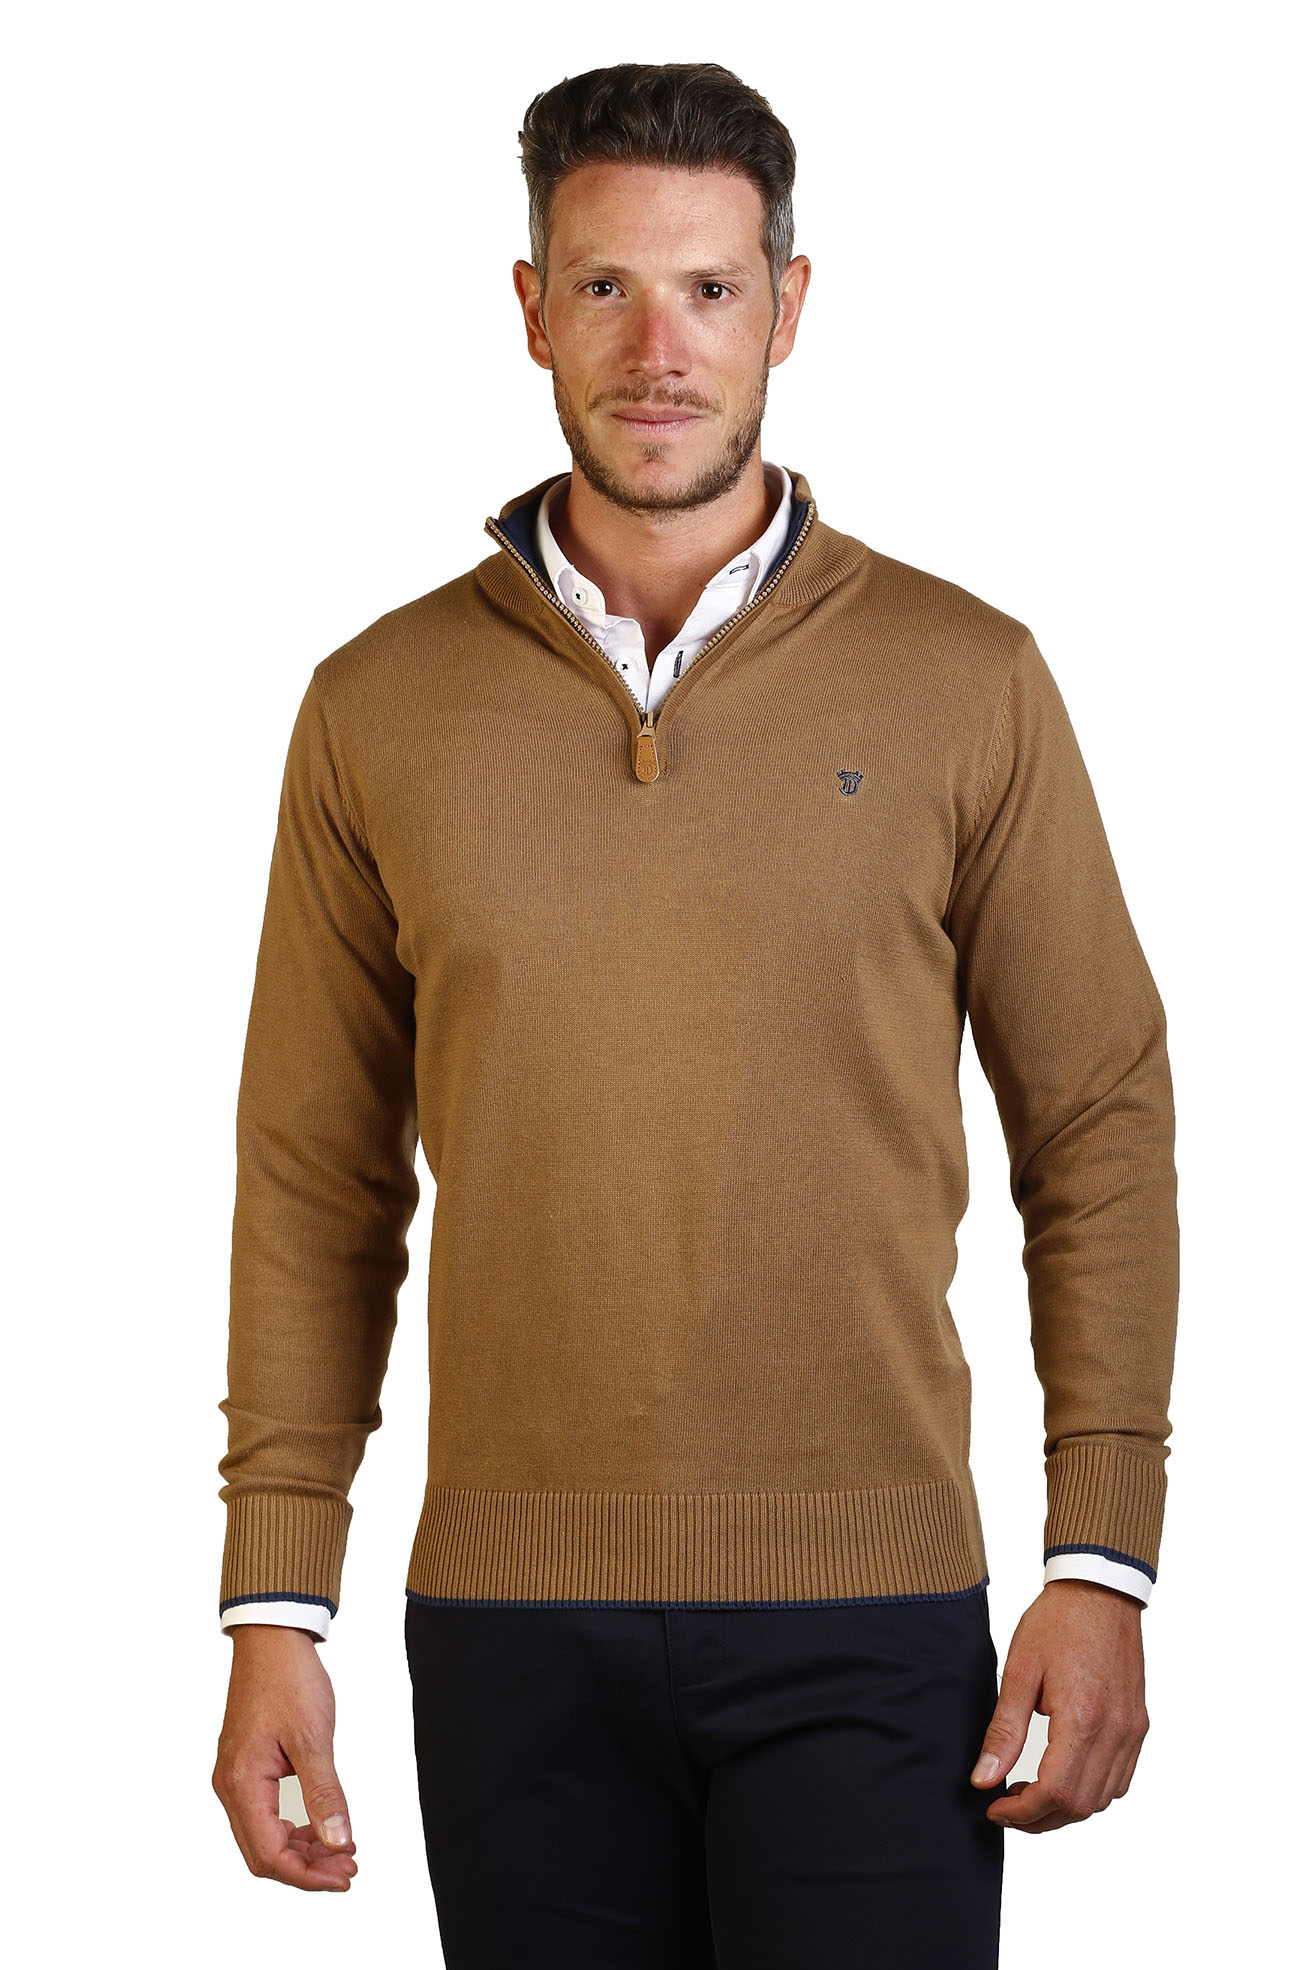 Jersey Men Neck Collar Zipper Length The Time Of Noggin JI1JCREMA-Camel